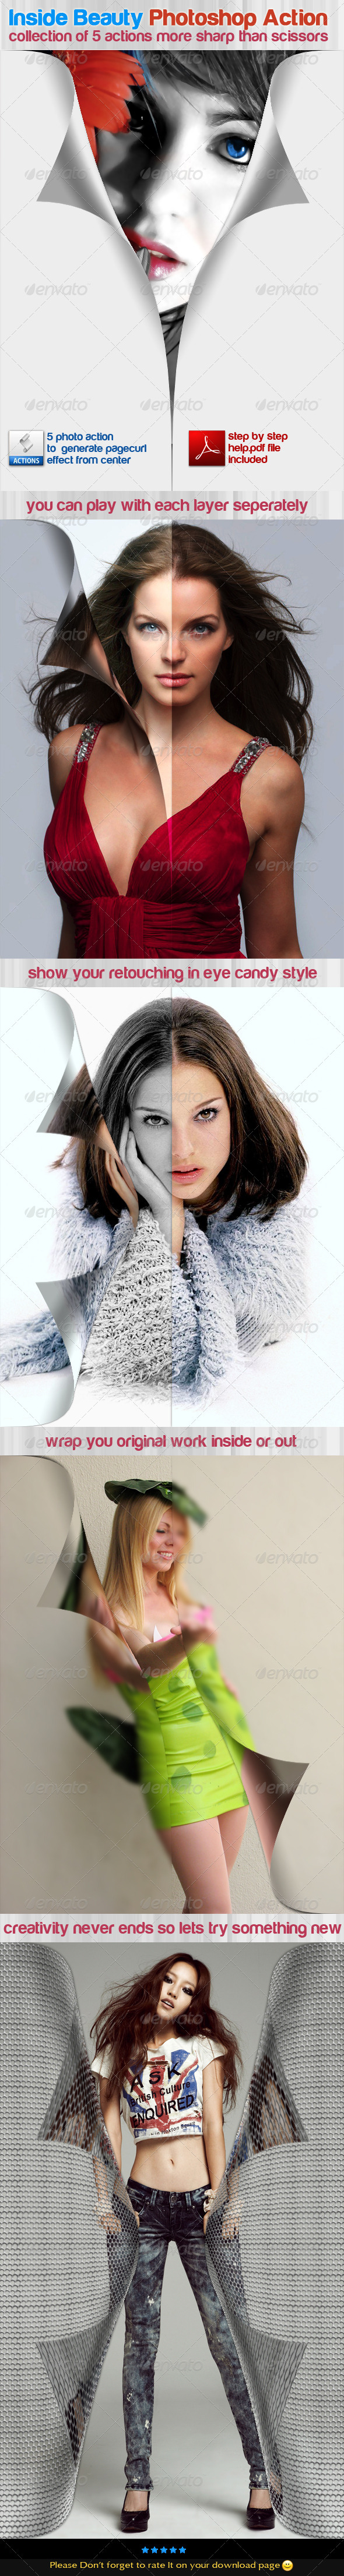 GraphicRiver Inside Beauty Photoshop Action 508014